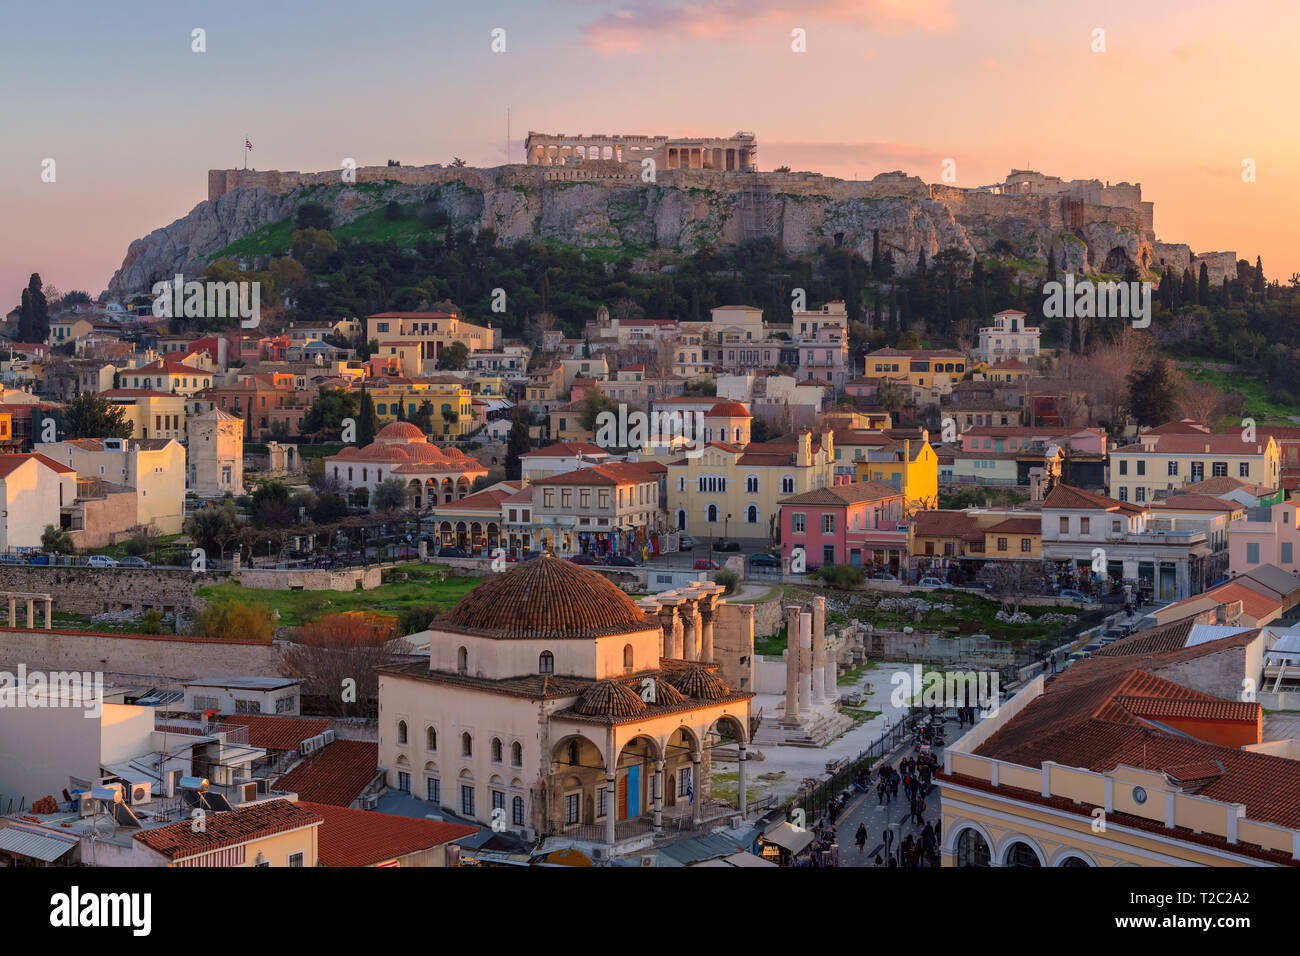 Sunset view of Athens old town and the Acropolis at sunset, Monastiraki Square, Athens, Greece. - Stock Image